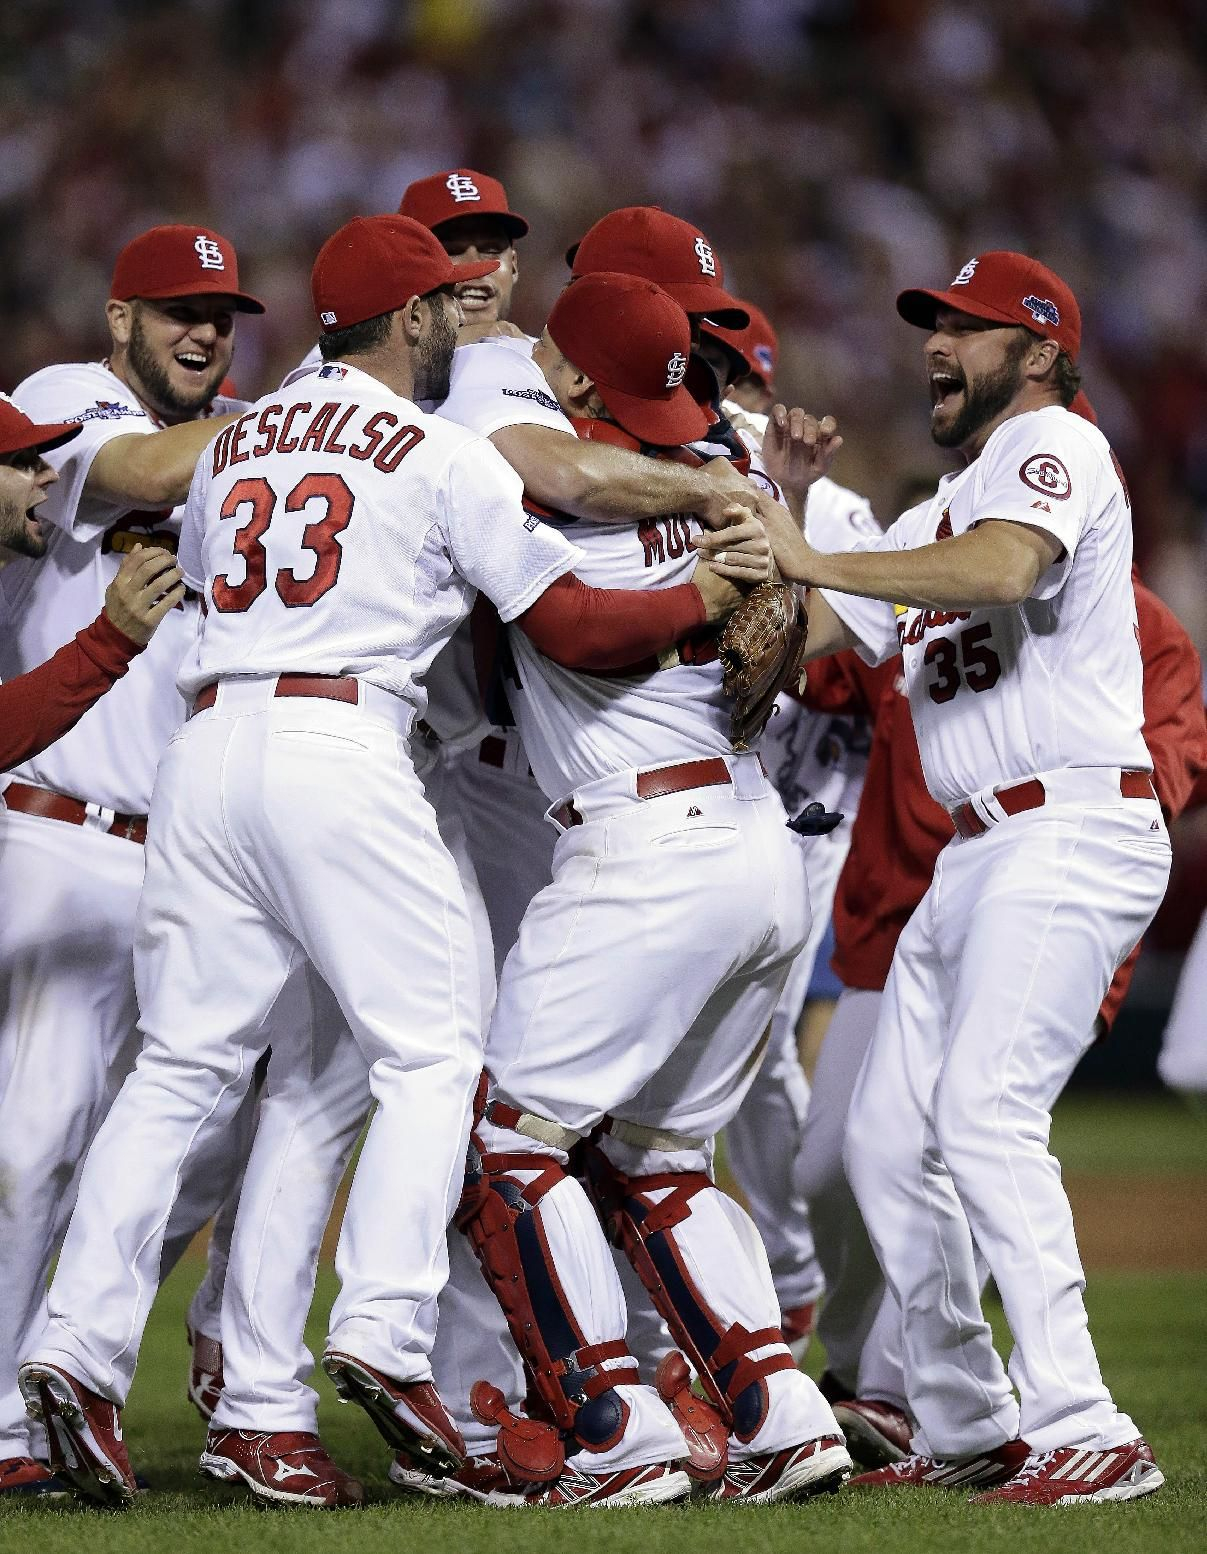 St. Louis Cardinals celebrate after defeating the